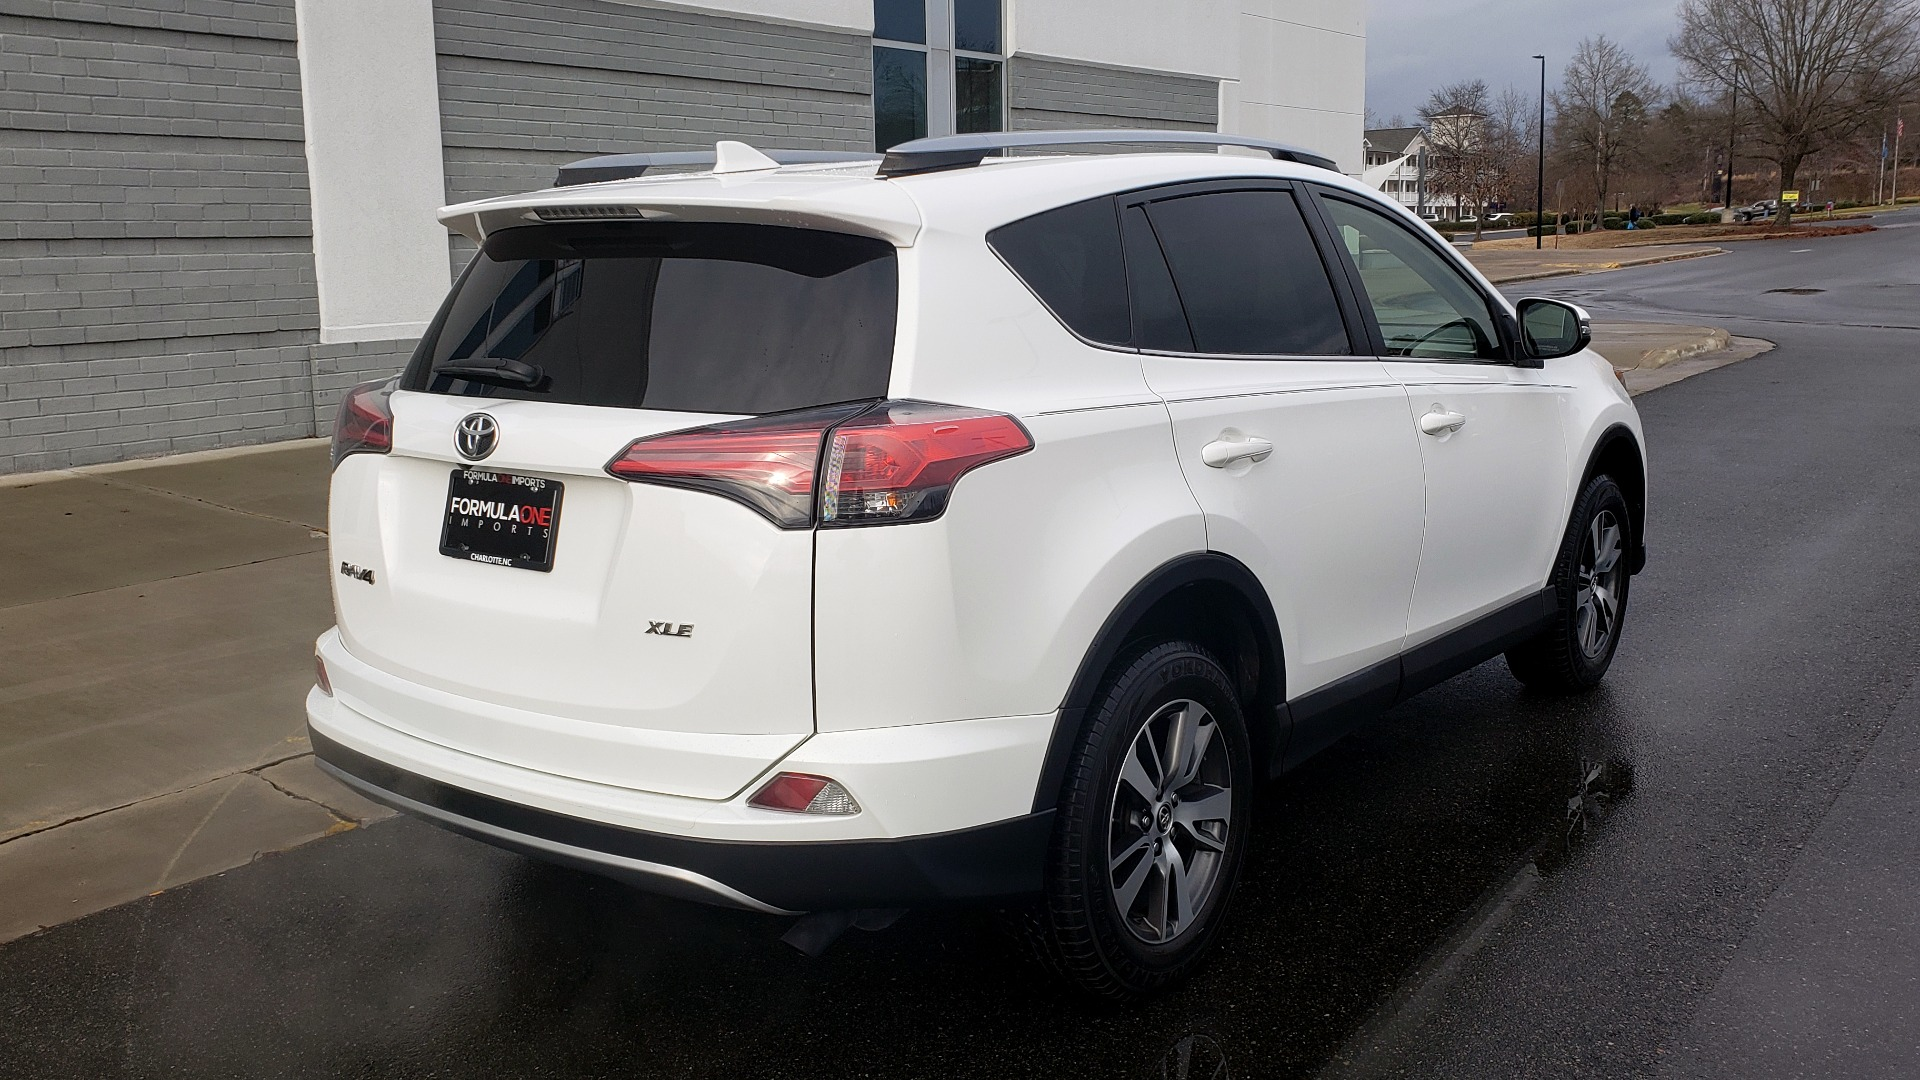 Used 2018 Toyota RAV4 XLE / FWD / 4-CYL / 6-SPD AUTO / BSM / REAR CROSS TRAFFIC ALERT for sale Sold at Formula Imports in Charlotte NC 28227 2